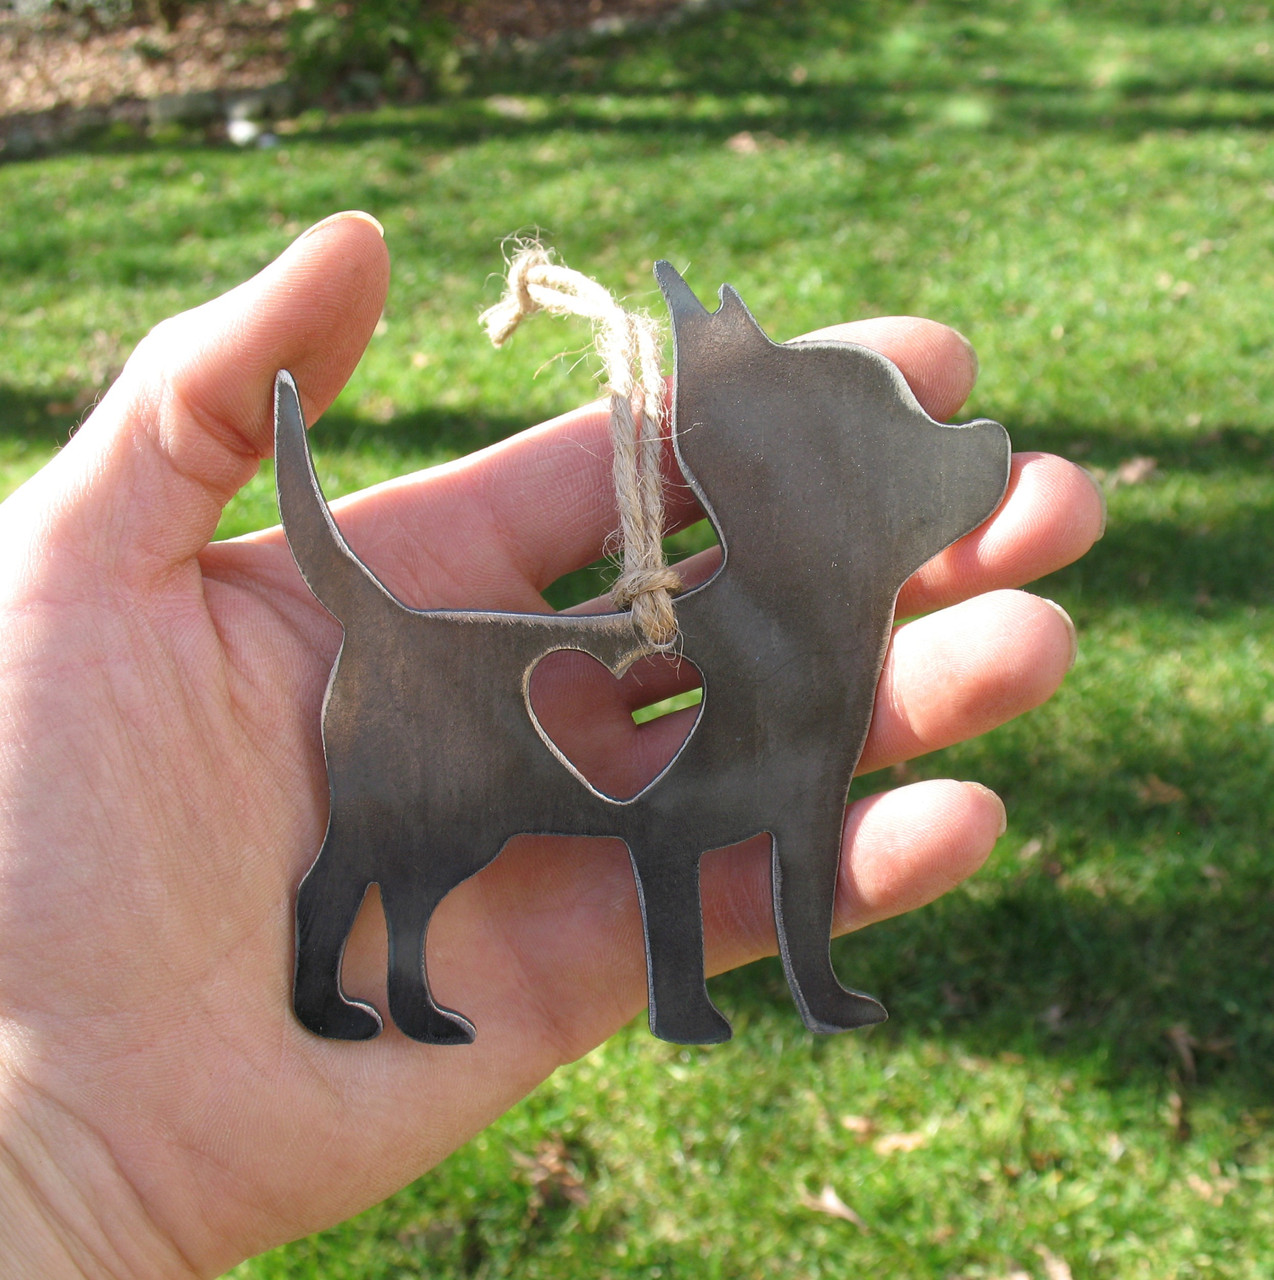 Chihuahua Dog Ornament 2 - Metal Dog Easter Basket Gift for Her Him - Pet Lover Ornament - Pet Loss Dog Memorial Ornament Remembrance Gift